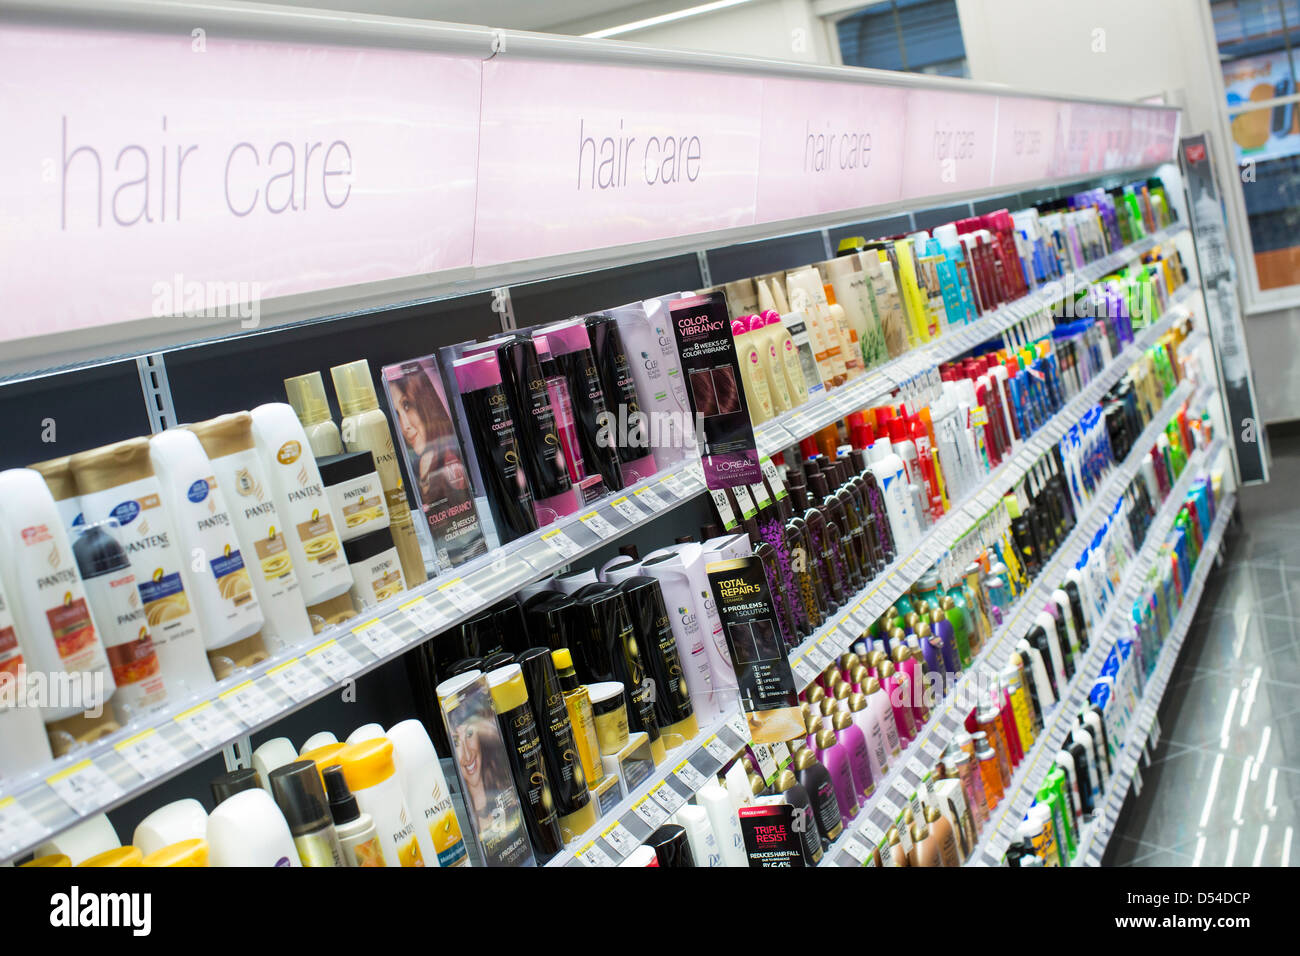 Hair care products on display at a Walgreens Flagship store in downtown Washington, DC. Stock Photo